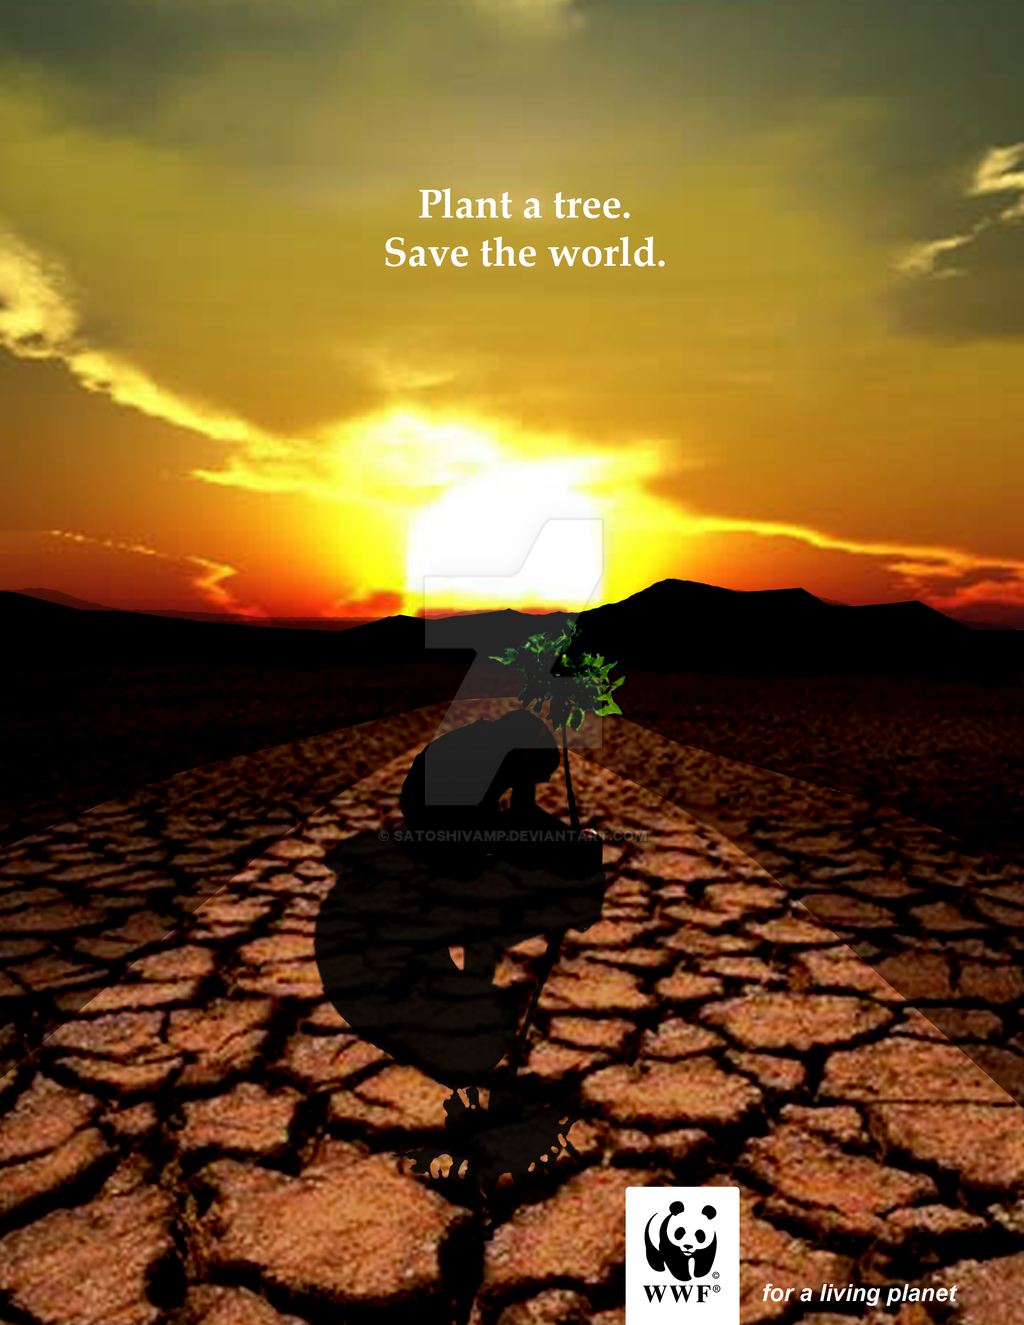 save the world plant tree Drones could fight deforestation by planting 1 billion trees a year.